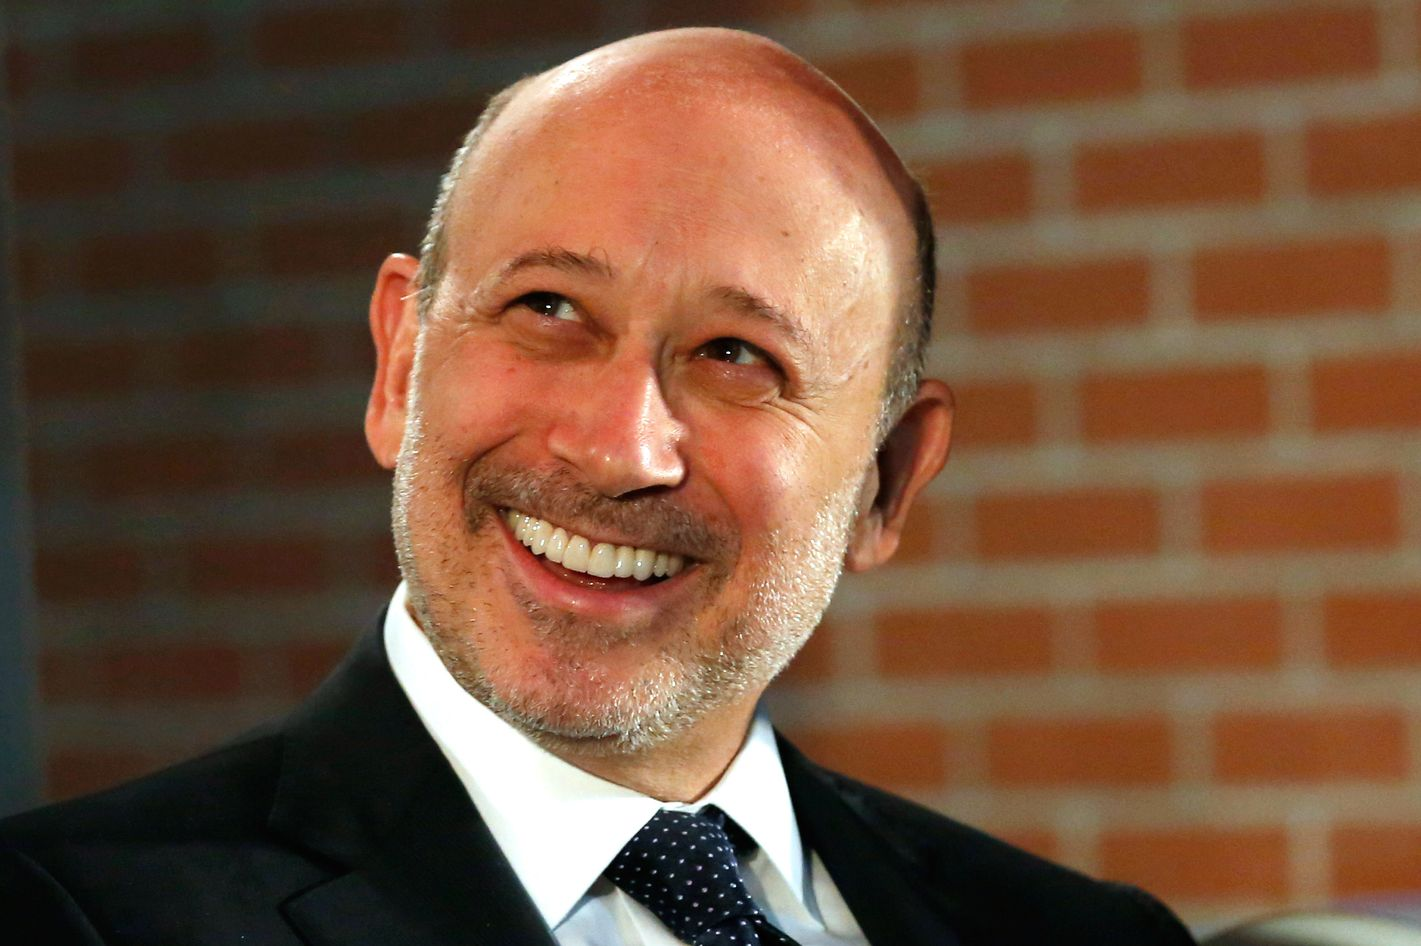 Lloyd Blankfein, chief executive officer of Goldman Sachs Group Inc., attends an event for the company's 10,000 Small Businesses initiative in Detroit, Michigan, U.S., on Tuesday, Nov. 26, 2013.